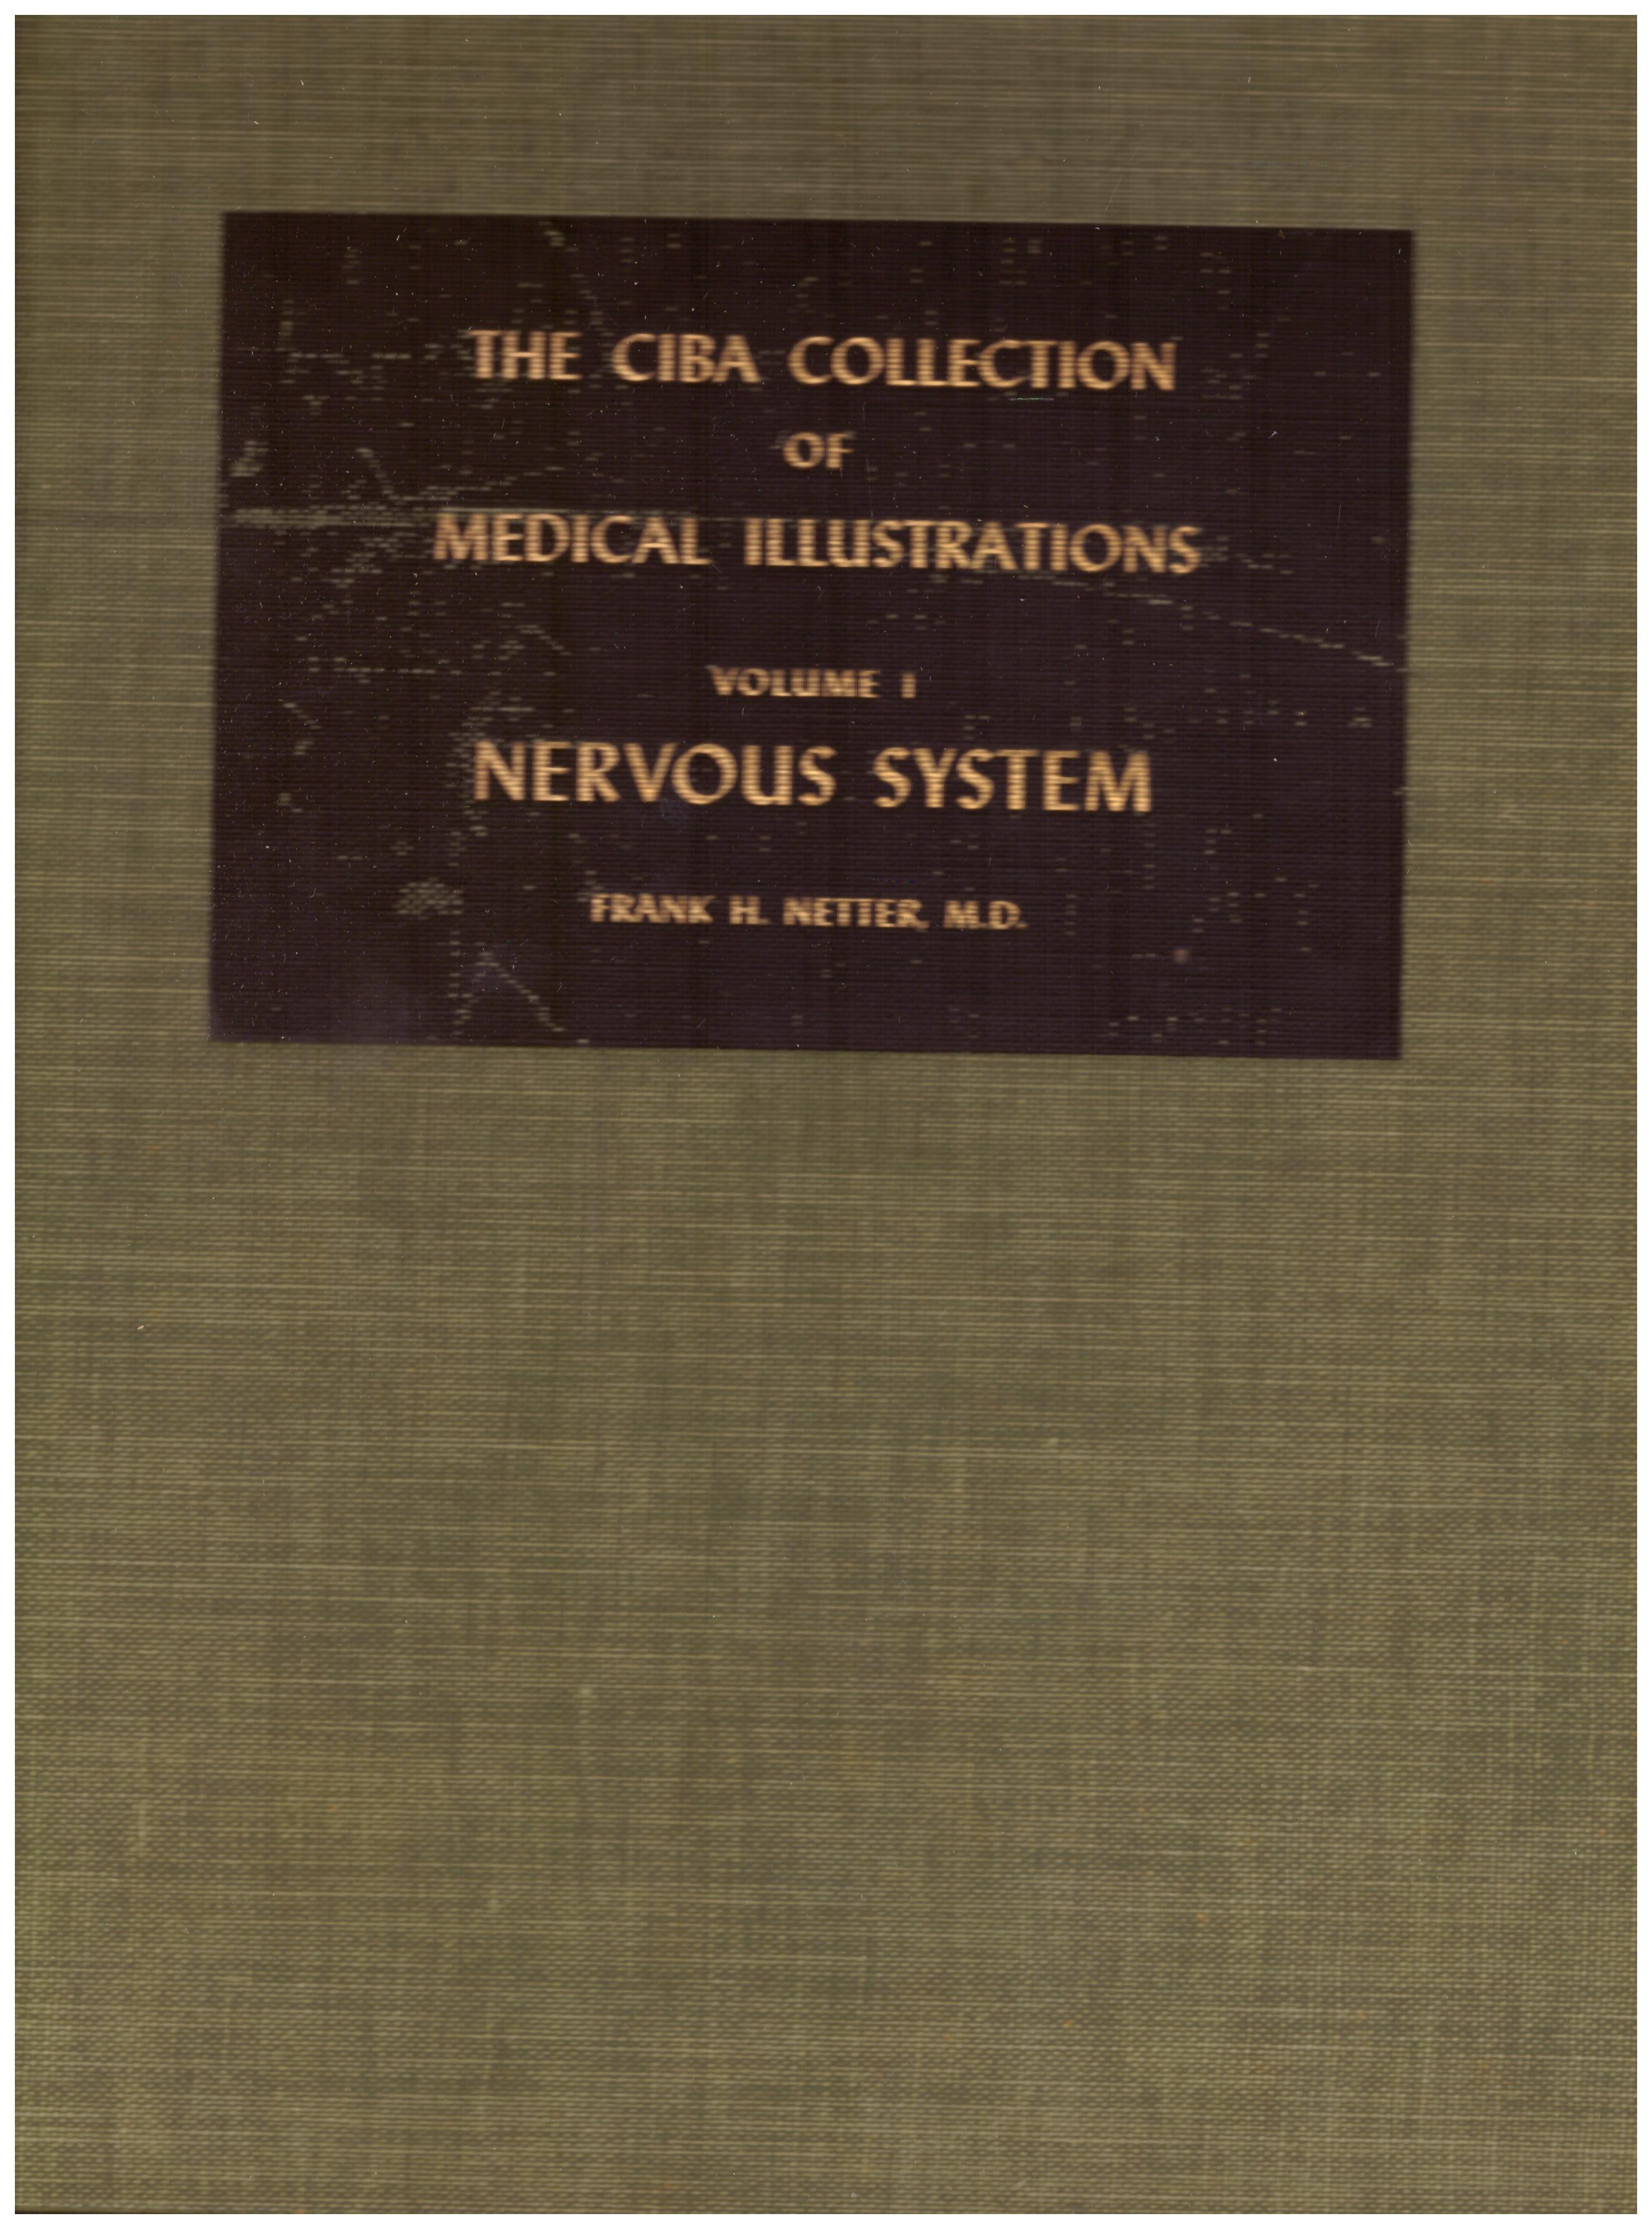 Titolo: The CIBA Collection of Medical Illustrations, Volume 1 Nervous System Autore : Frank H. Netter Editore: CIBA